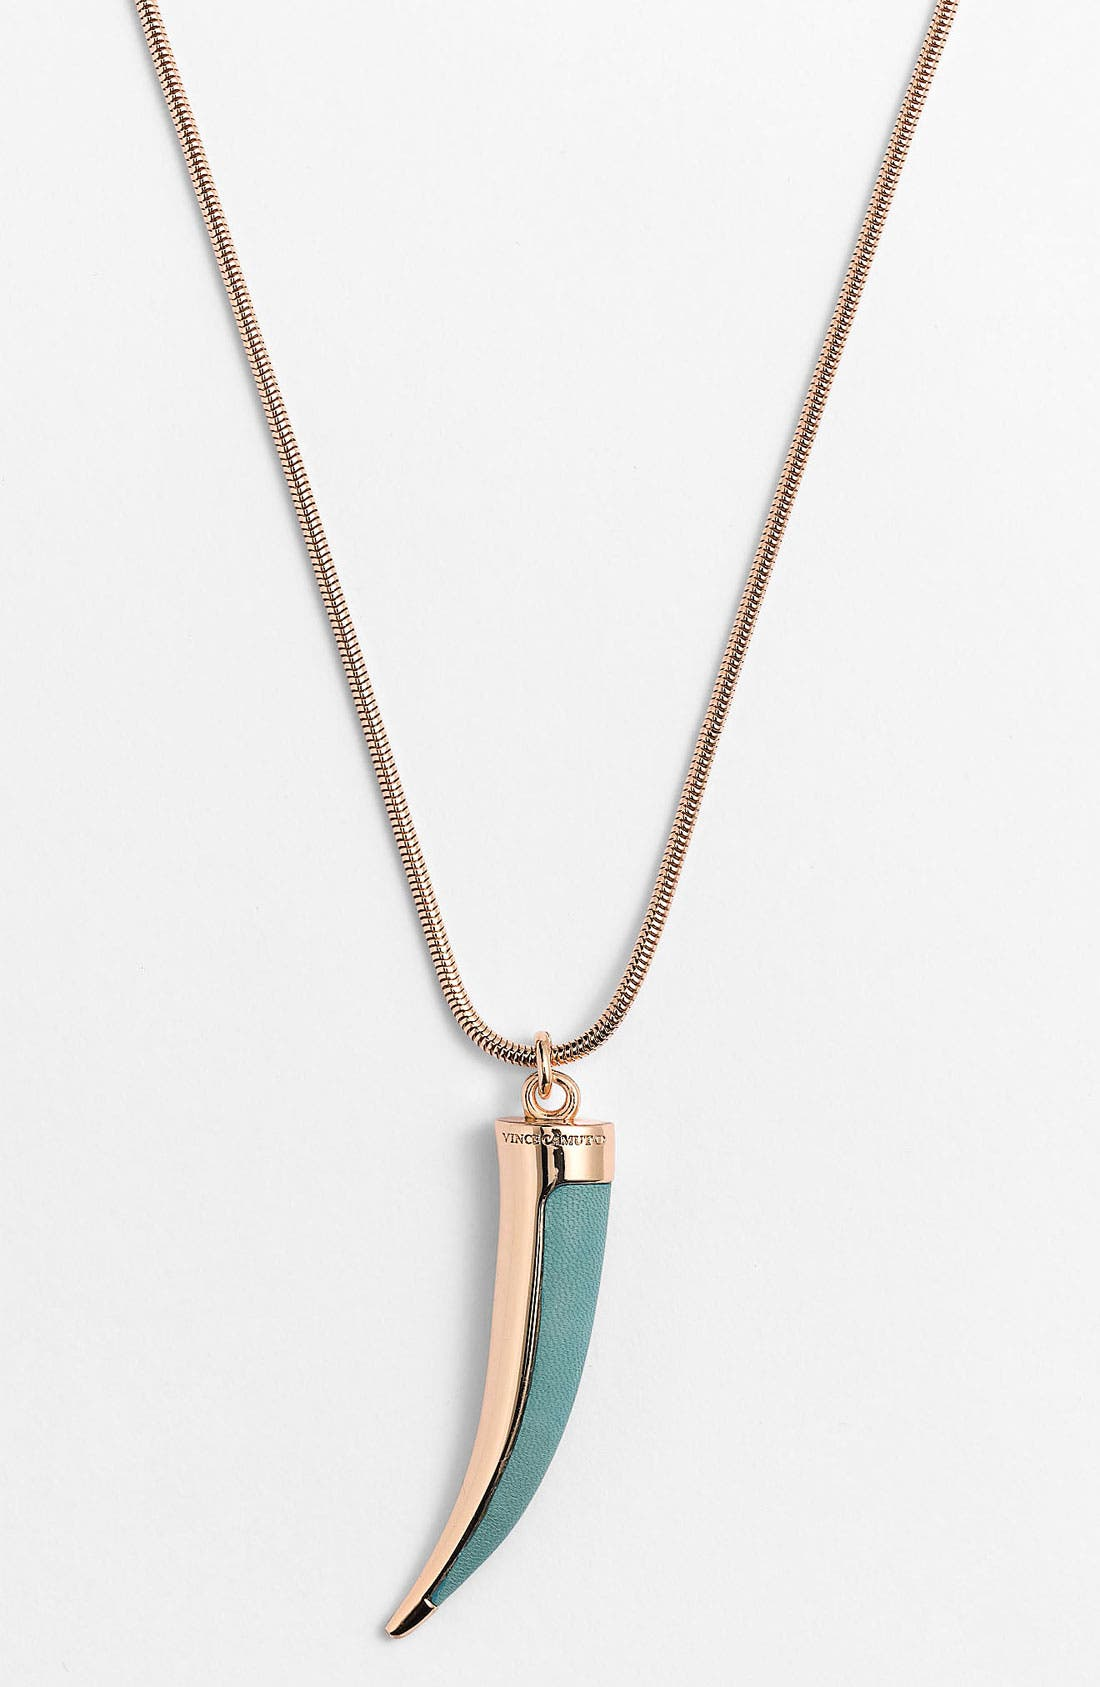 Main Image - Vince Camuto Pendant Necklace